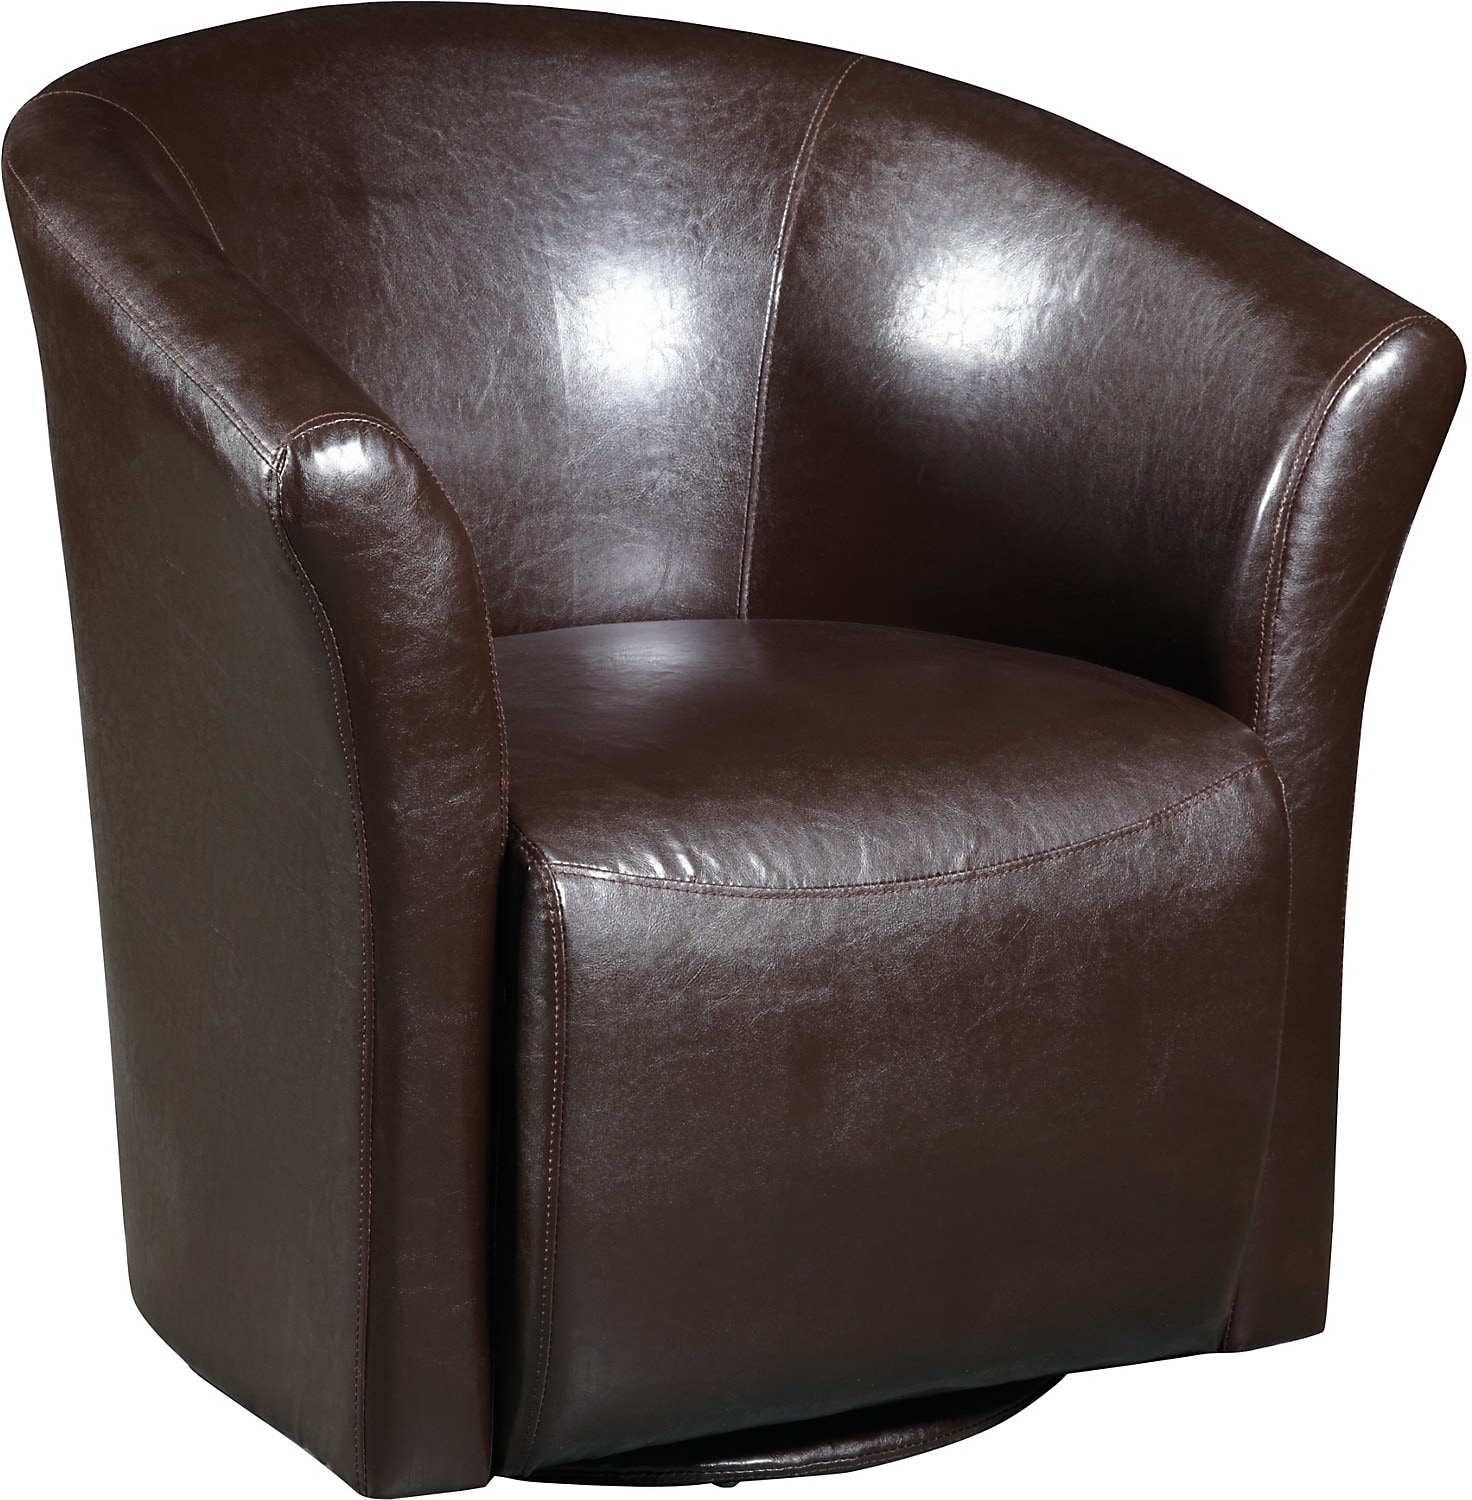 Living Room Furniture - Brown Swivel Accent Chair